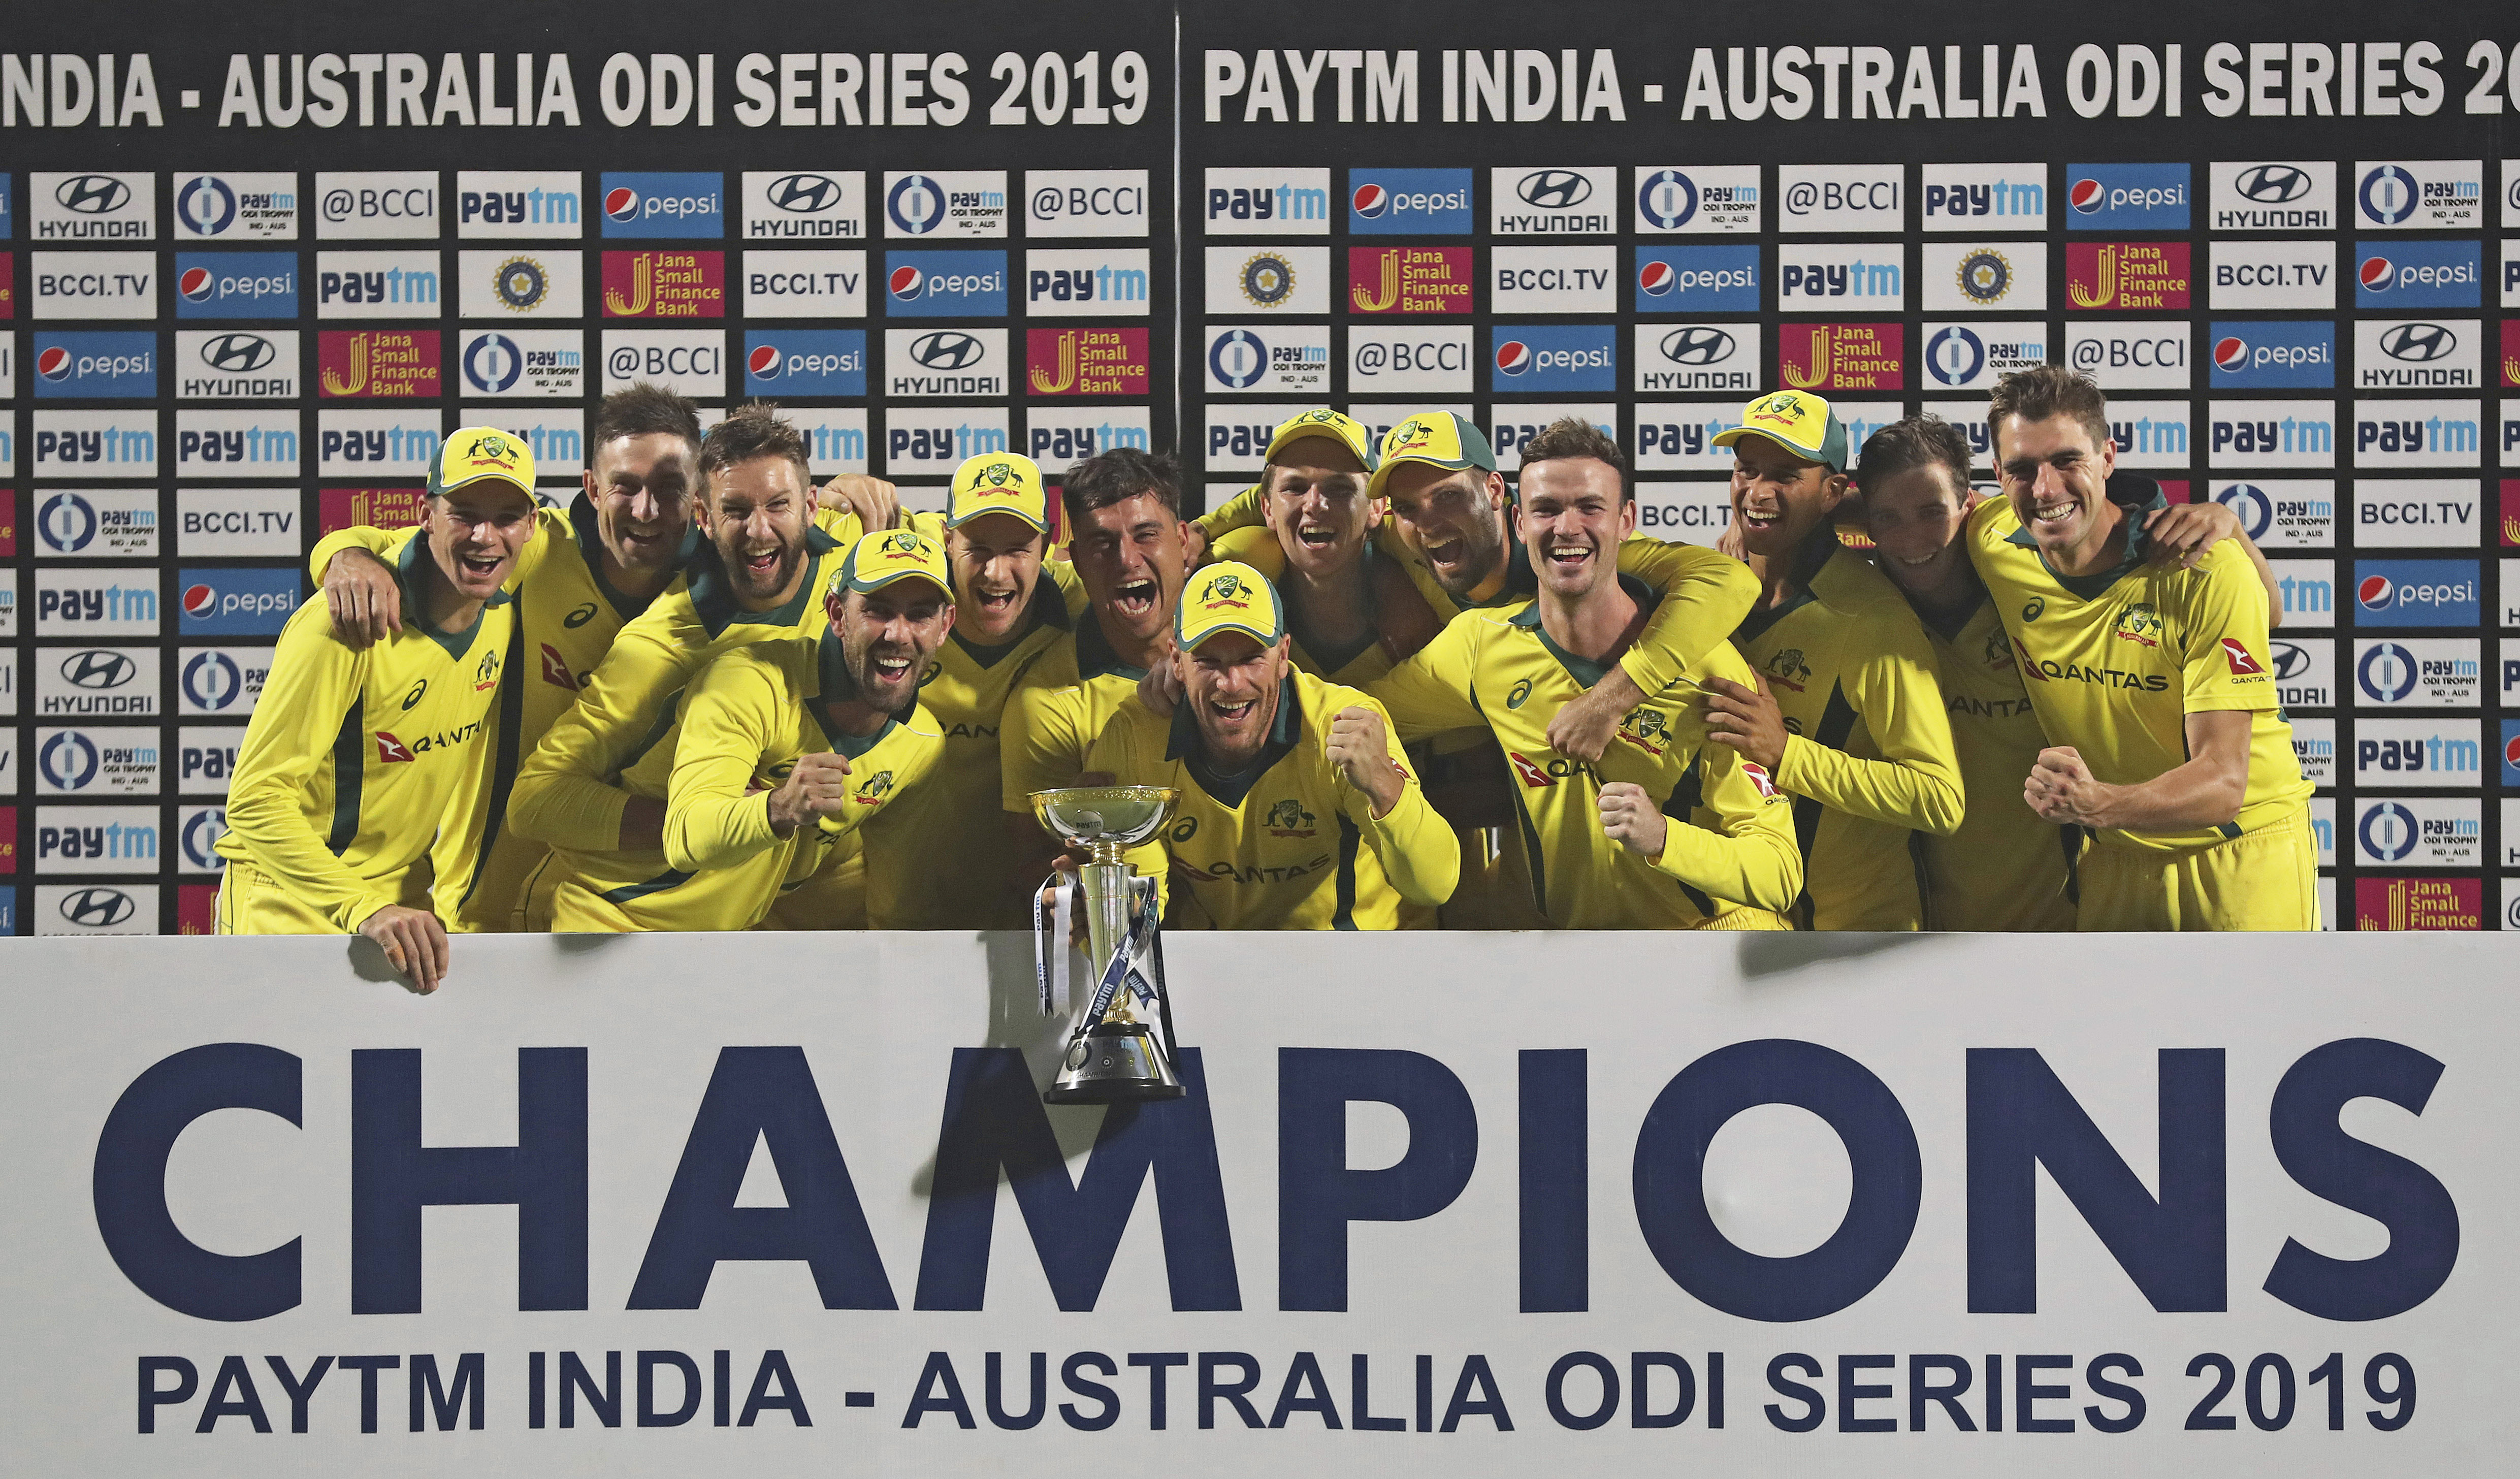 Australia cricketers pose with the trophy after defeating India in the fifth and final one-dayer, at the Kotla, to clinch the series 3-2.